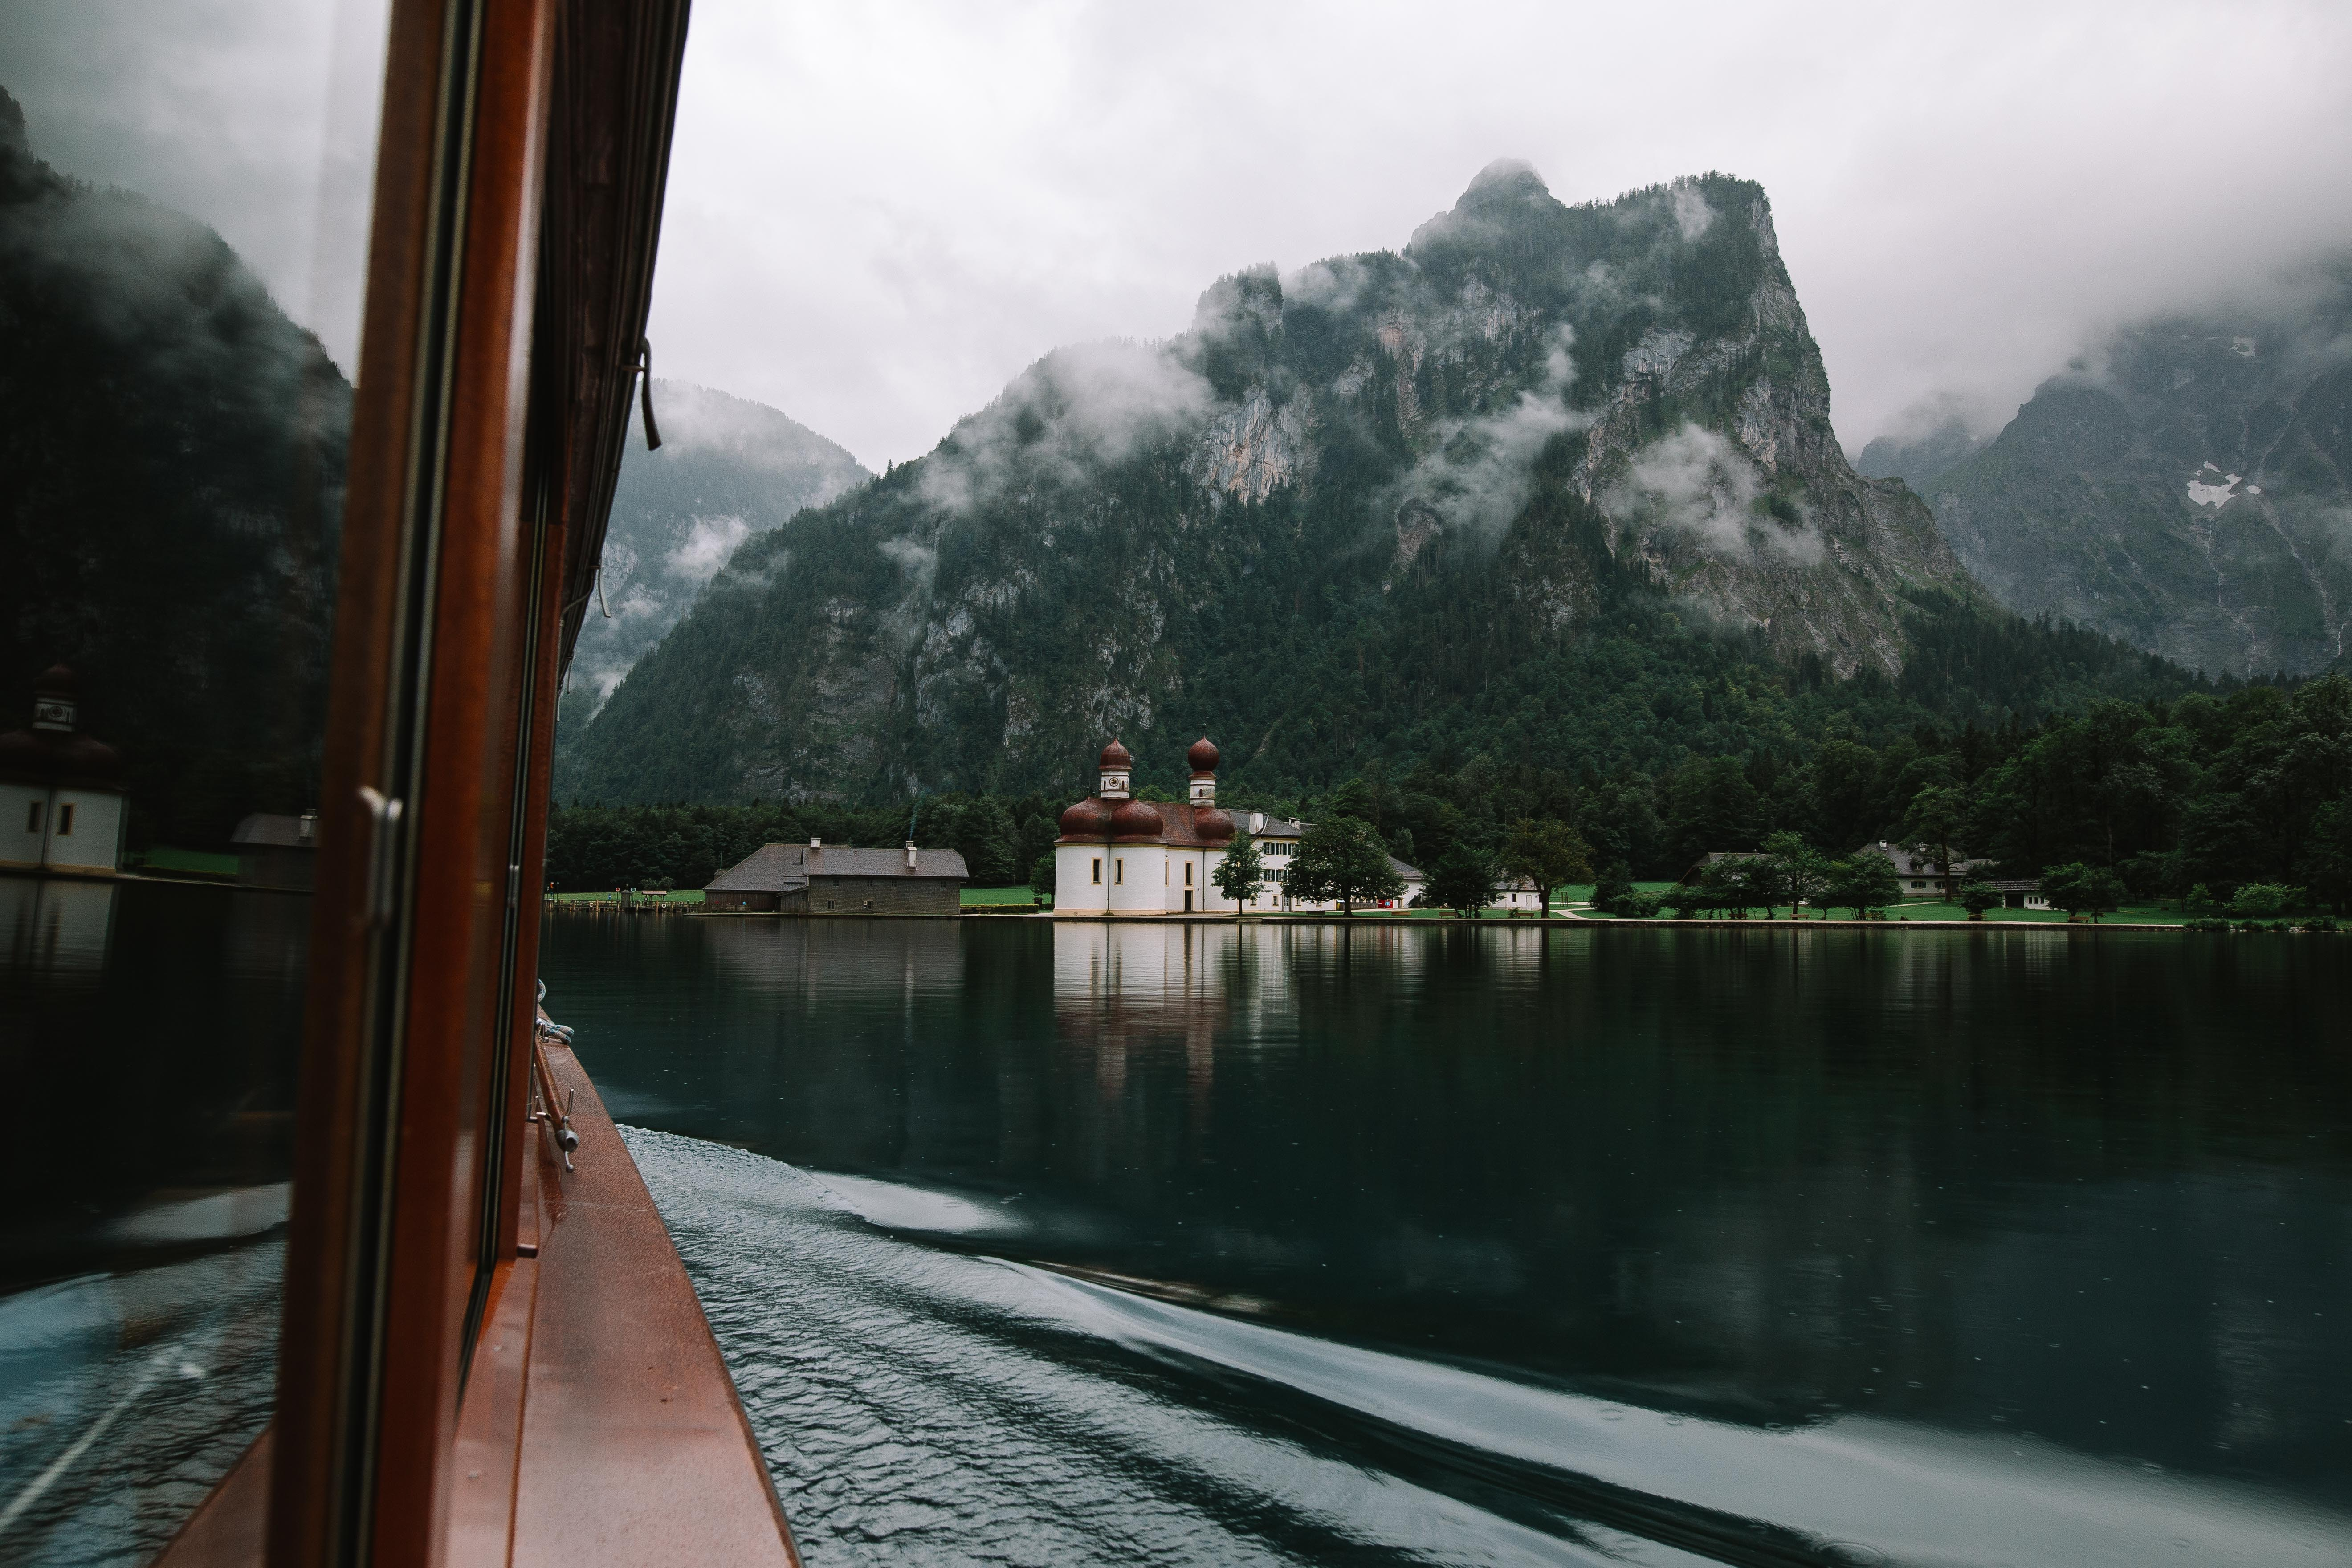 brown wooden boat on body of water in front of mountain photo